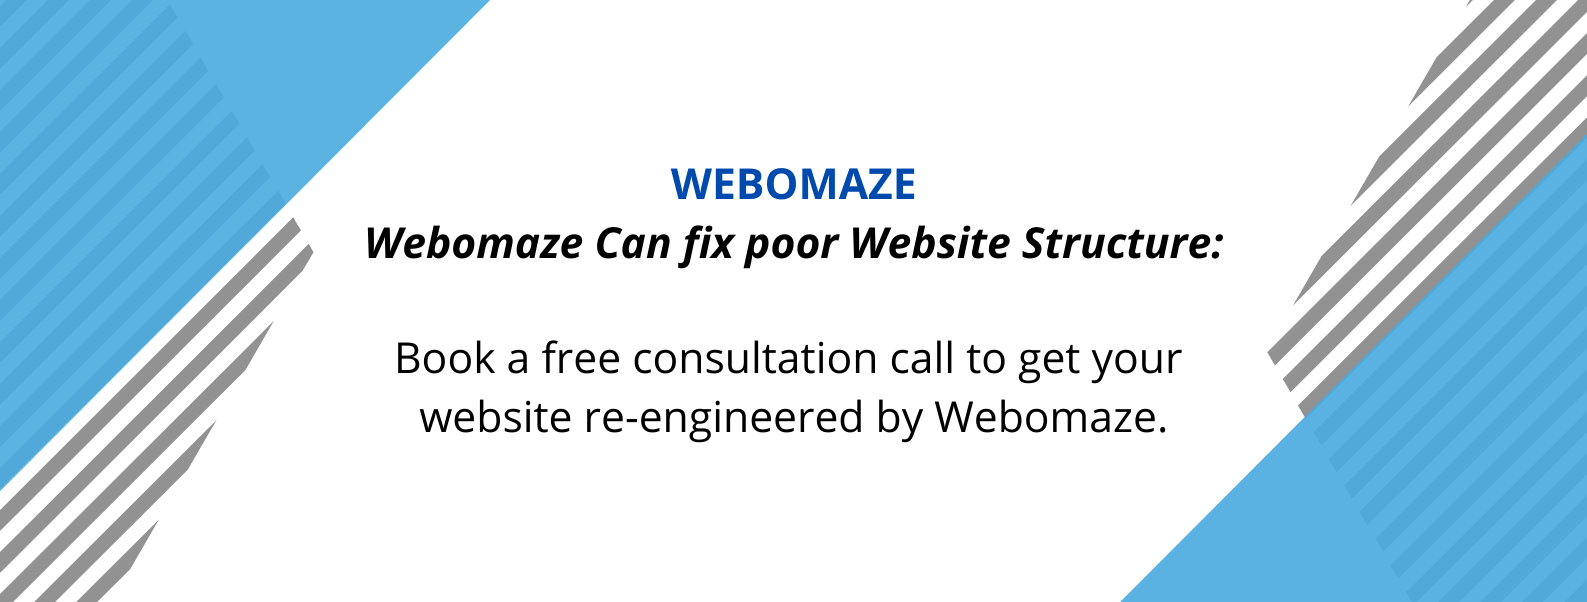 Unique selling proposition of one of the best SEO agencies of Australia - WeboMaze